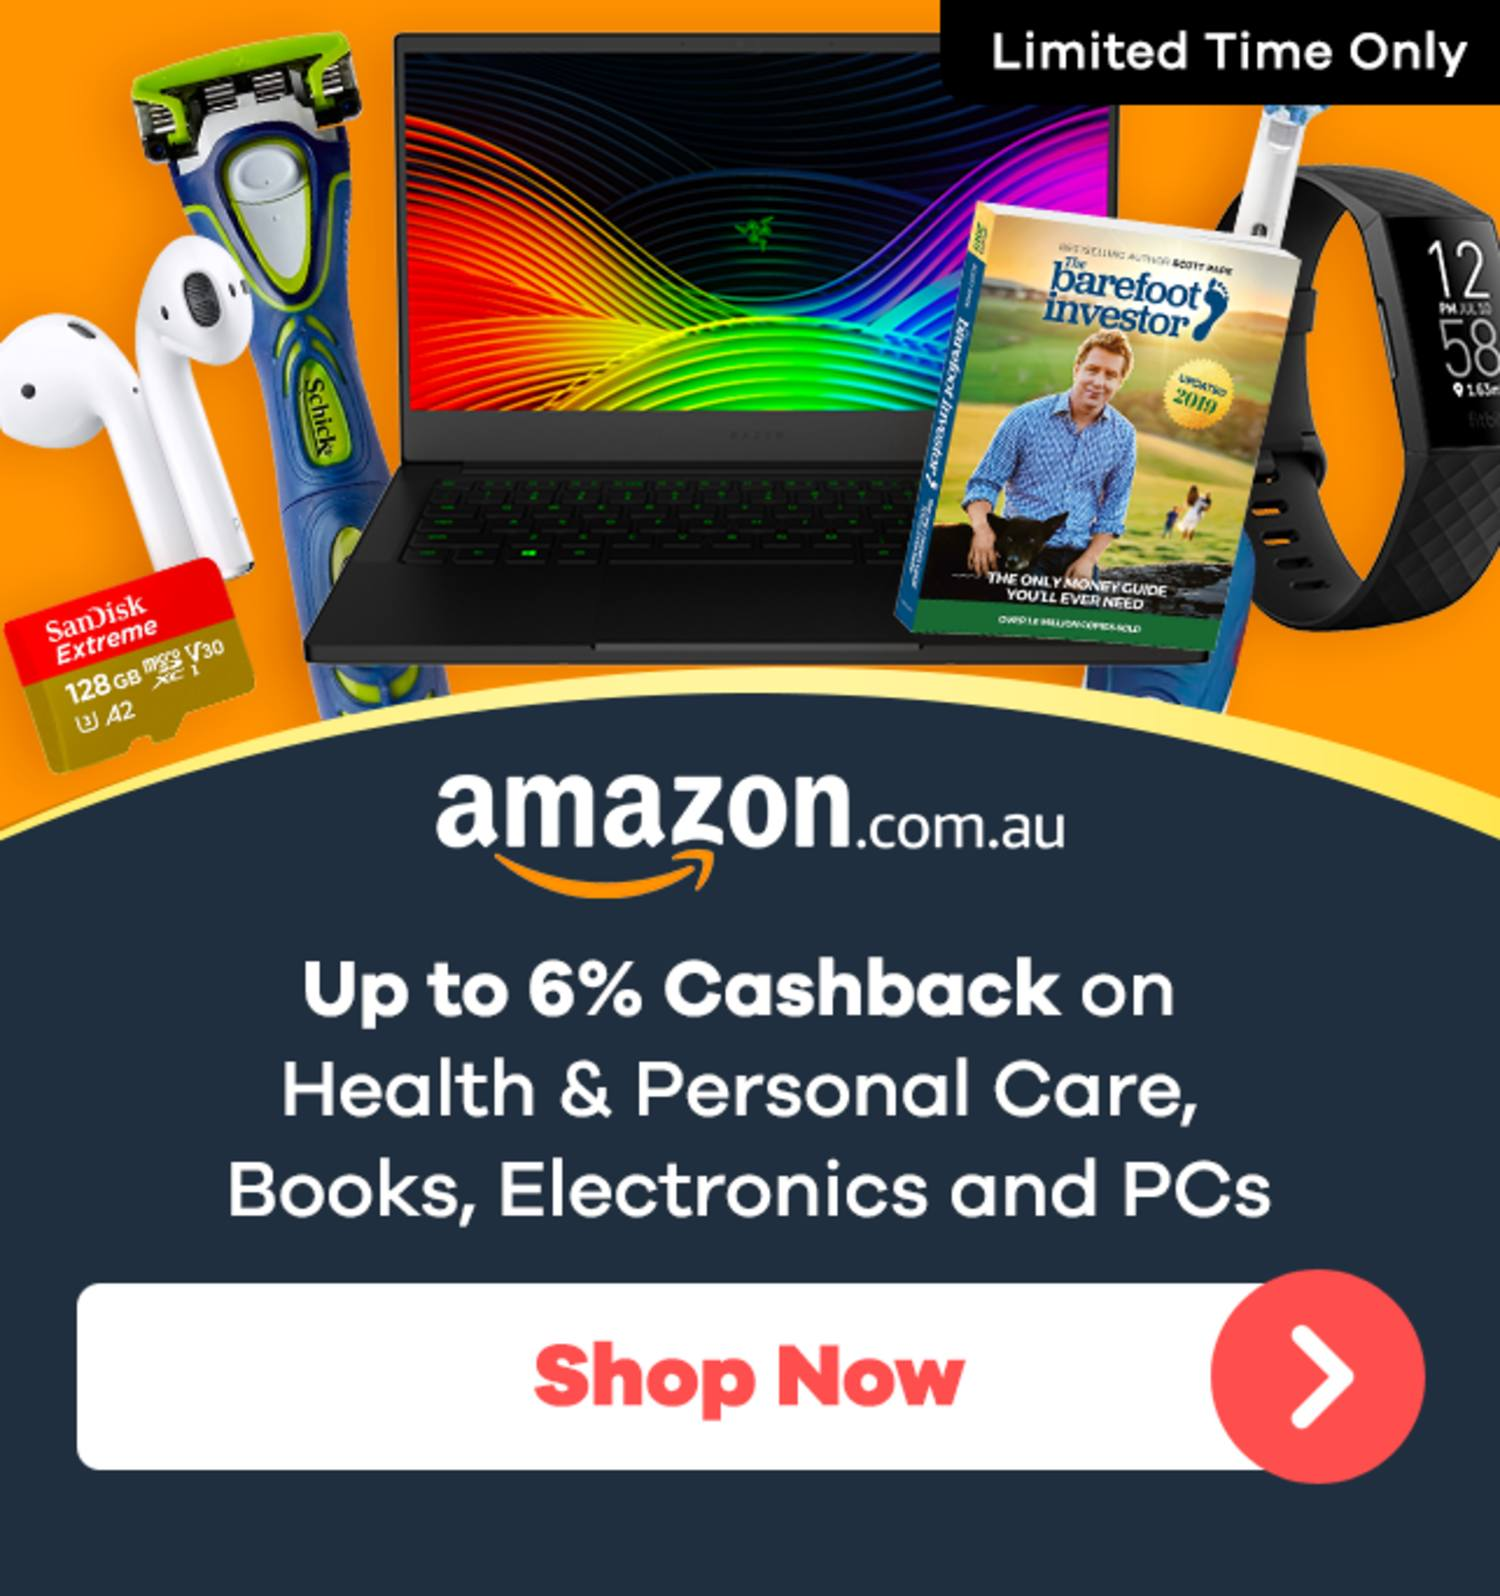 Amazon - Cashback on New Categories